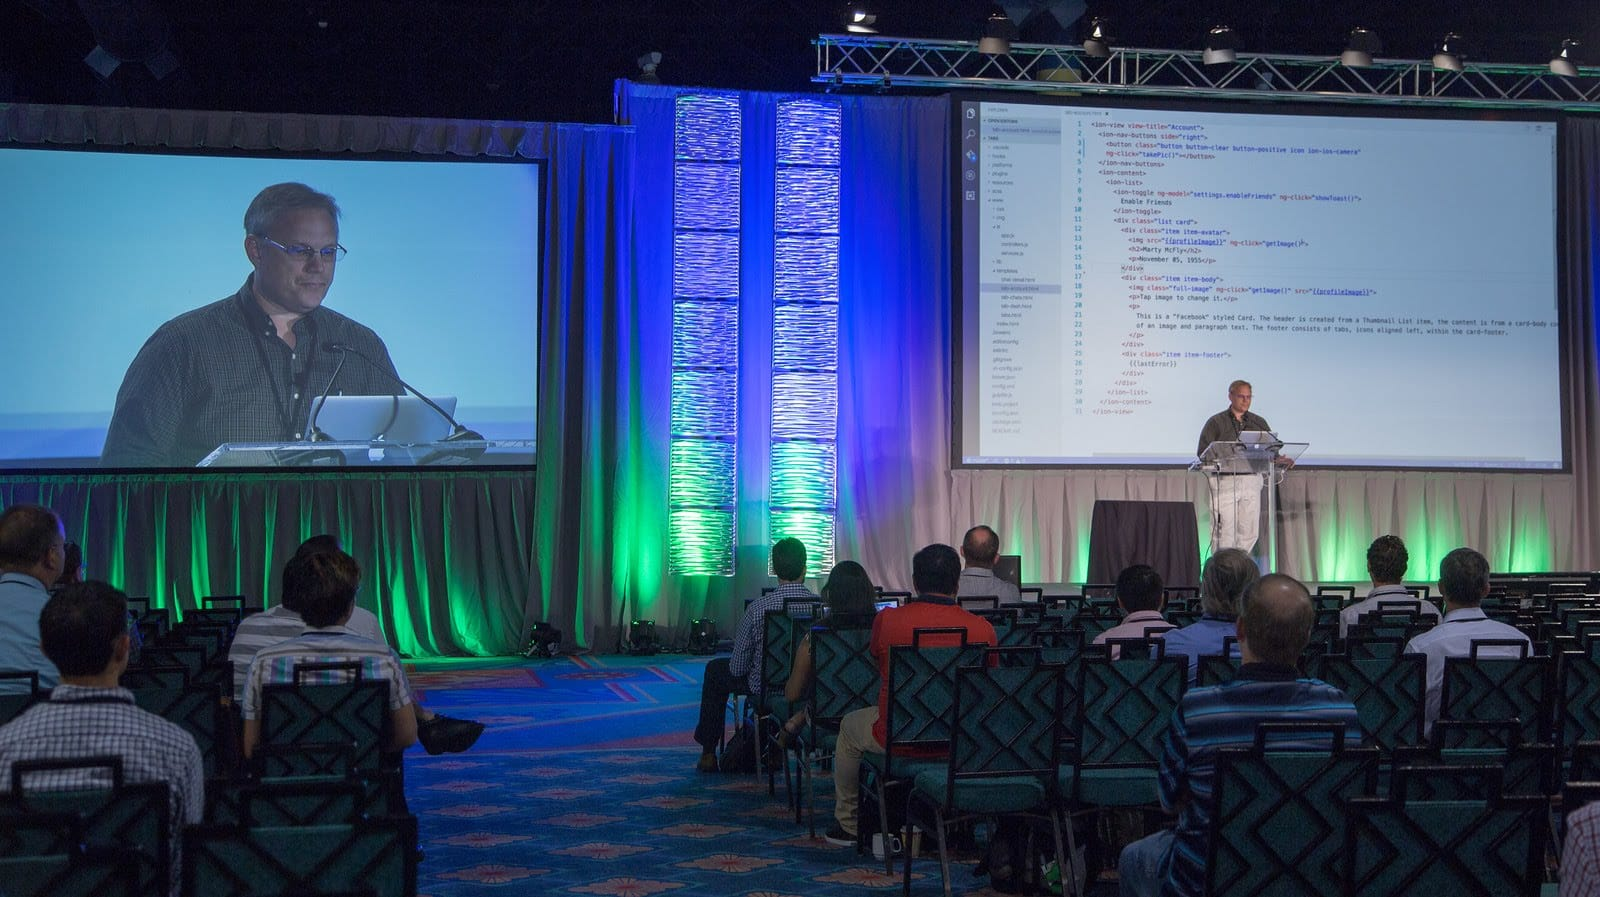 my presentation on the Ionic Framework, given at Disney's Coronado Springs Resort and Convention Center